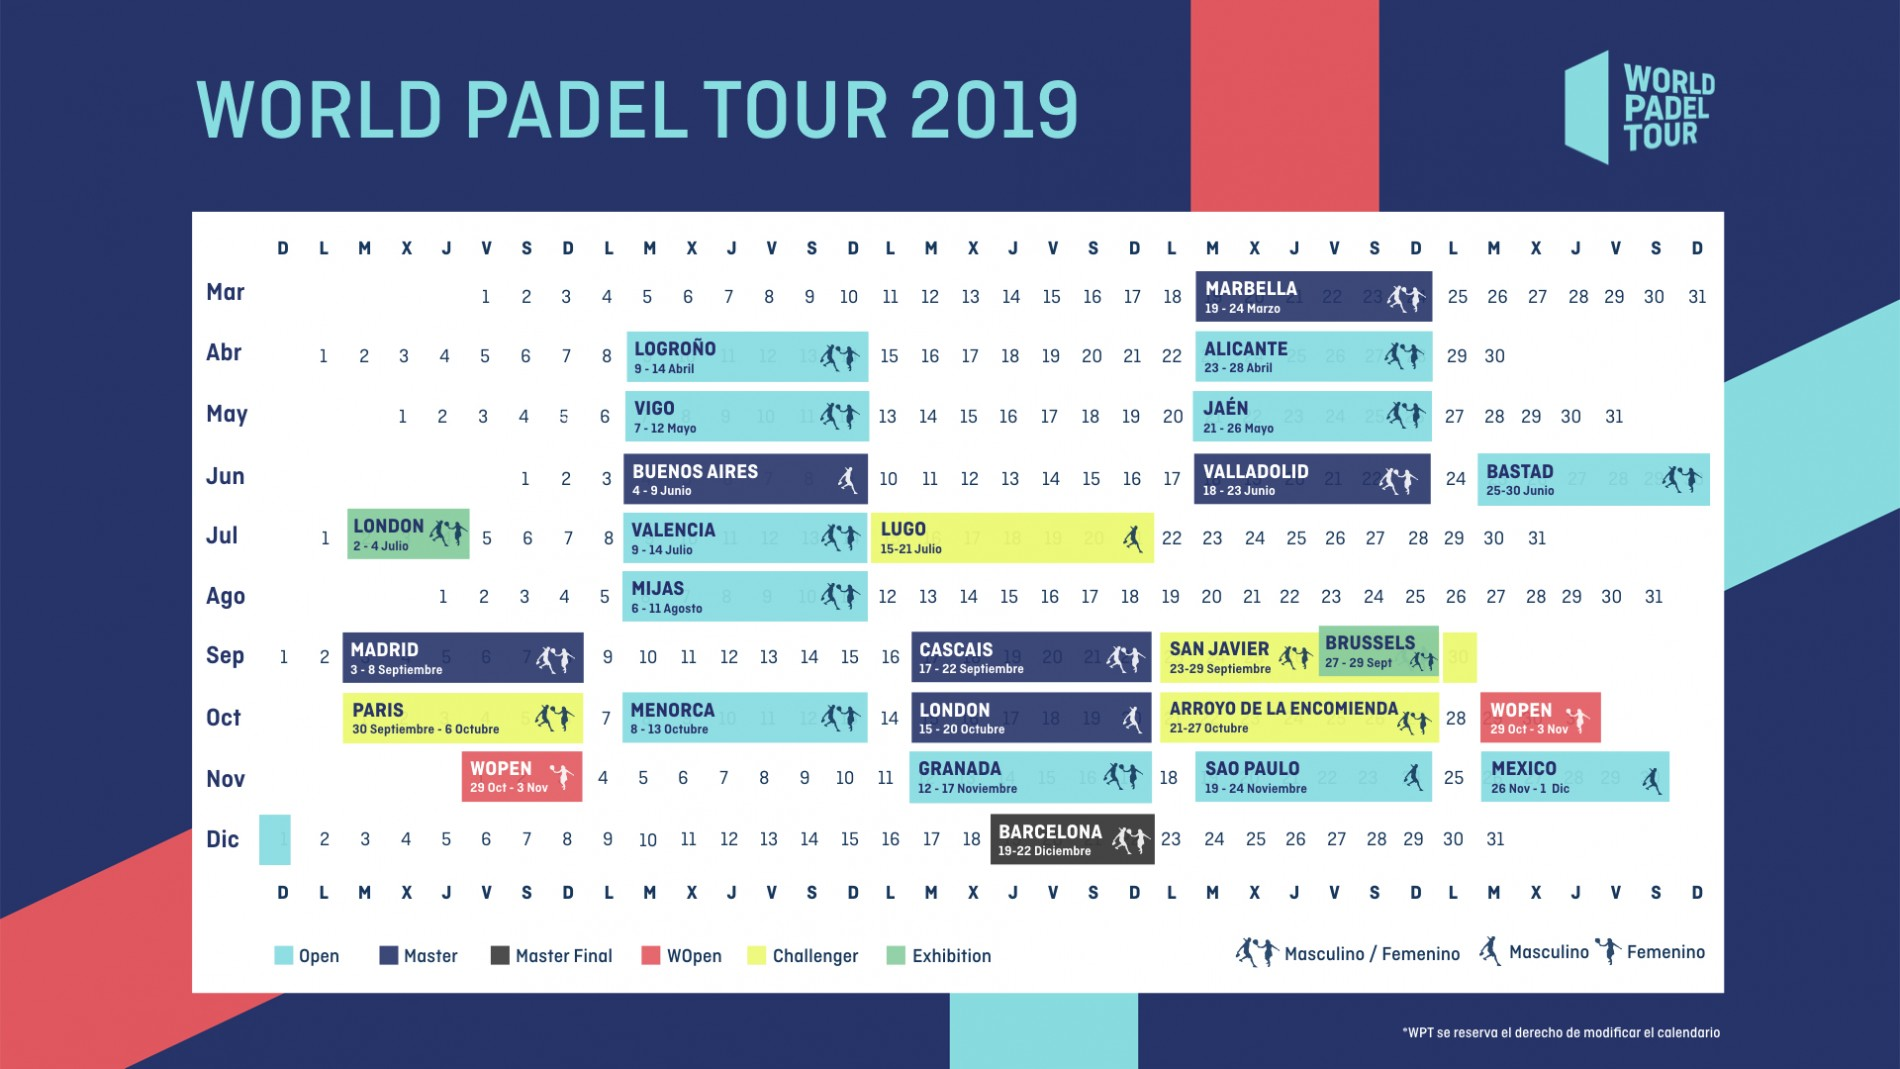 Calendario World Padel Tour.The 2019 Season Will Be The Most International In The